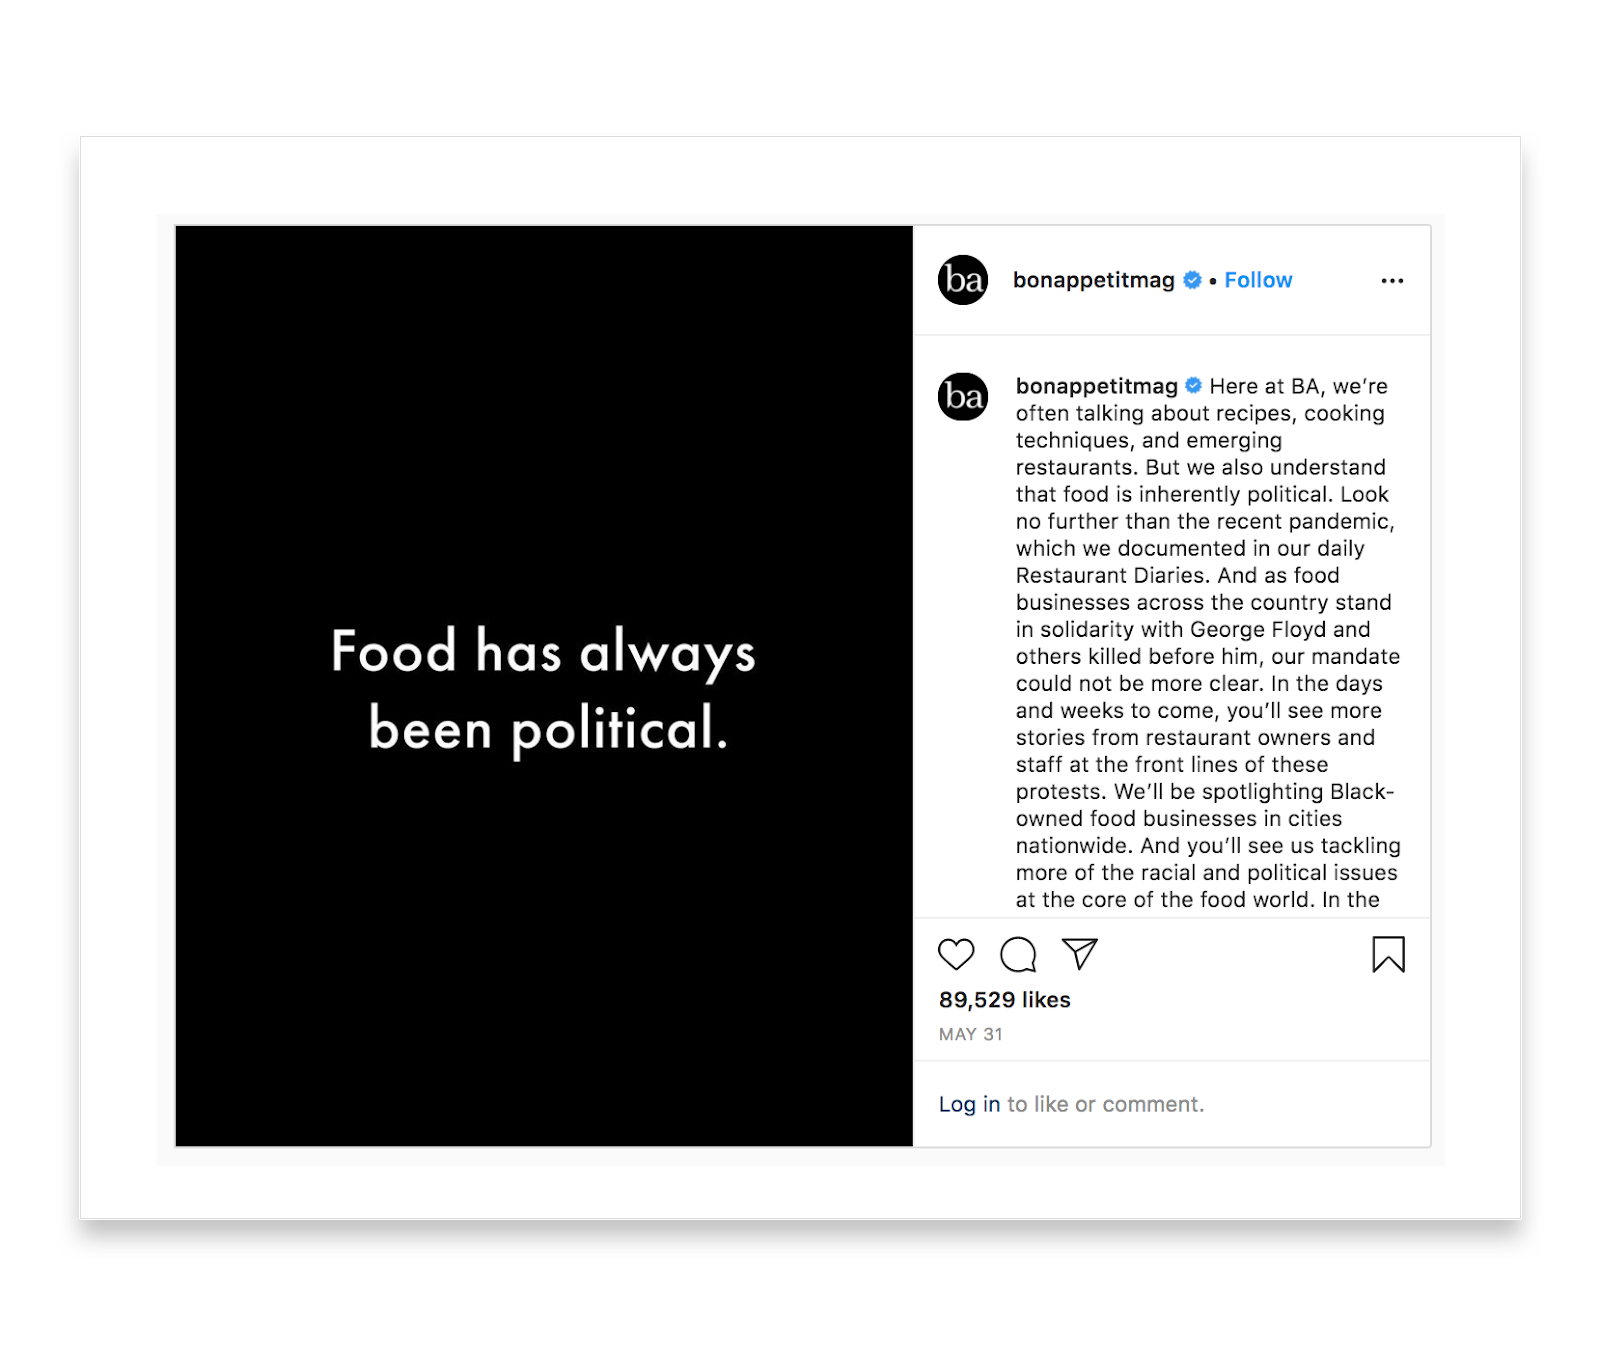 Bon Appetit's Instagram post shows a black image with white words that read Food has always been political. The caption with the post reads: Here at BA, we're often talking about recipes, cooking, techniques, and emerging restaurants. But we also understand that food is inherently political. Look no further than the recent pandemic, which we documented in our daily Restaurant Diaries. And as food businesses across the country stand in solidarity with George Floyd and others killed before him, our mandate could not be more clear. In the days and weeks to come, you'll see more stories from restaurant owners and staff at the front lines of these protests. We'll be spotlighting Black-owned food businesses in cities nationwide. And you'll see us tackling more of the racial and political issues at the core of the food world. In the...